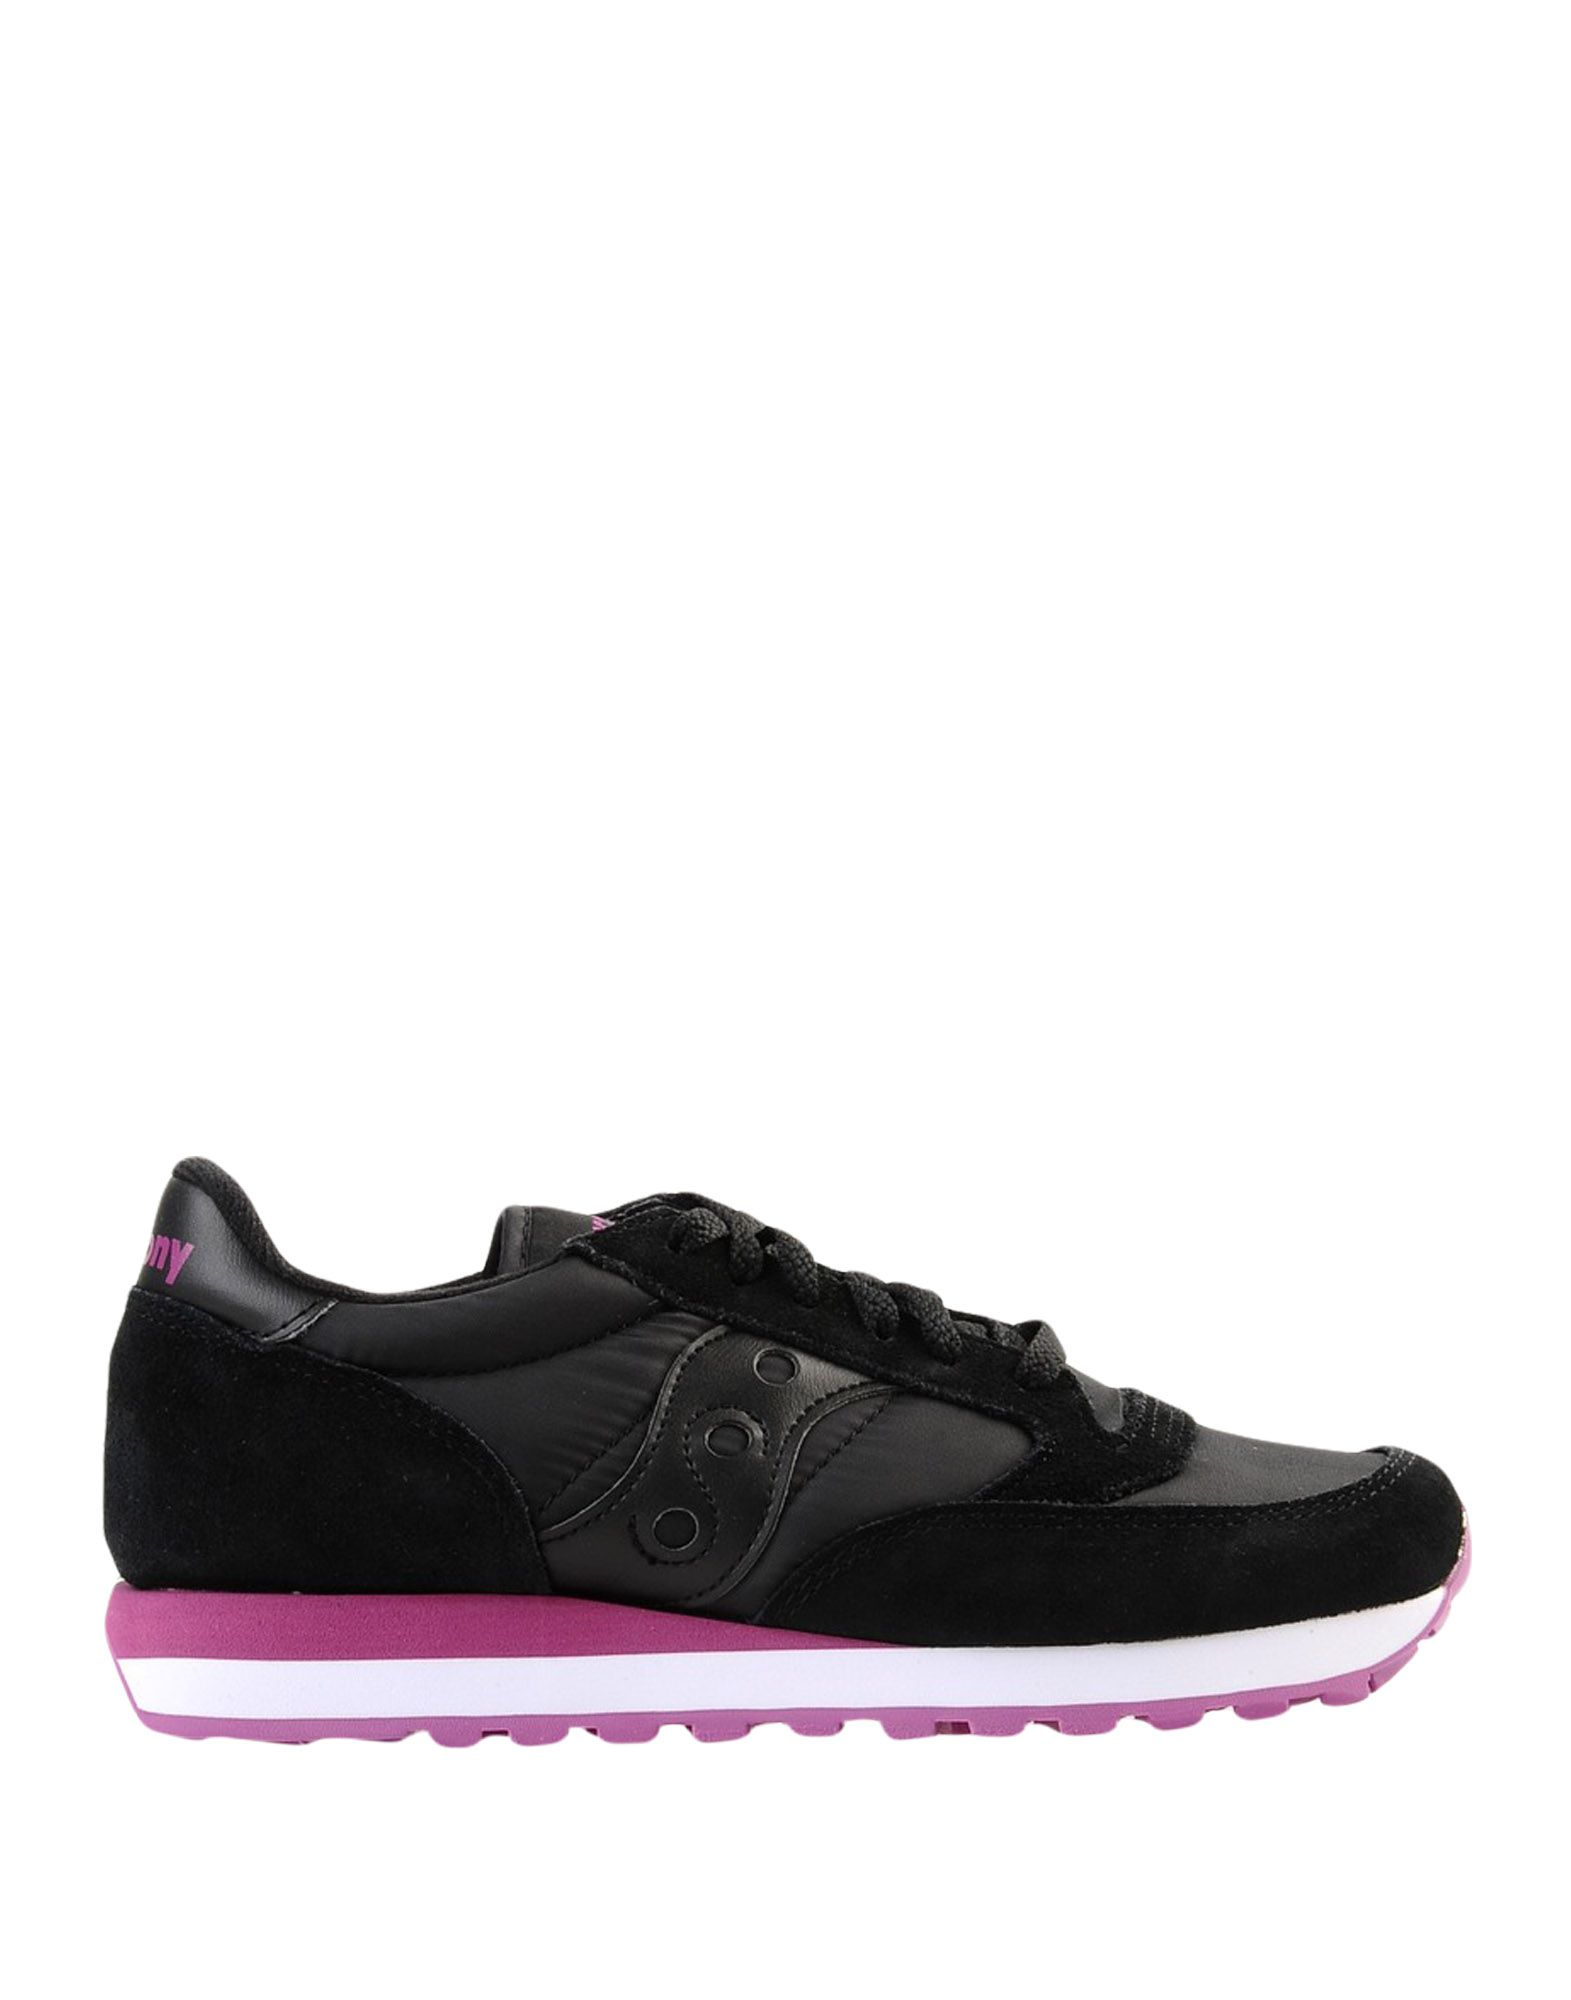 Baskets Saucony Jazz O W - Femme - Baskets Saucony Noir Confortable et belle